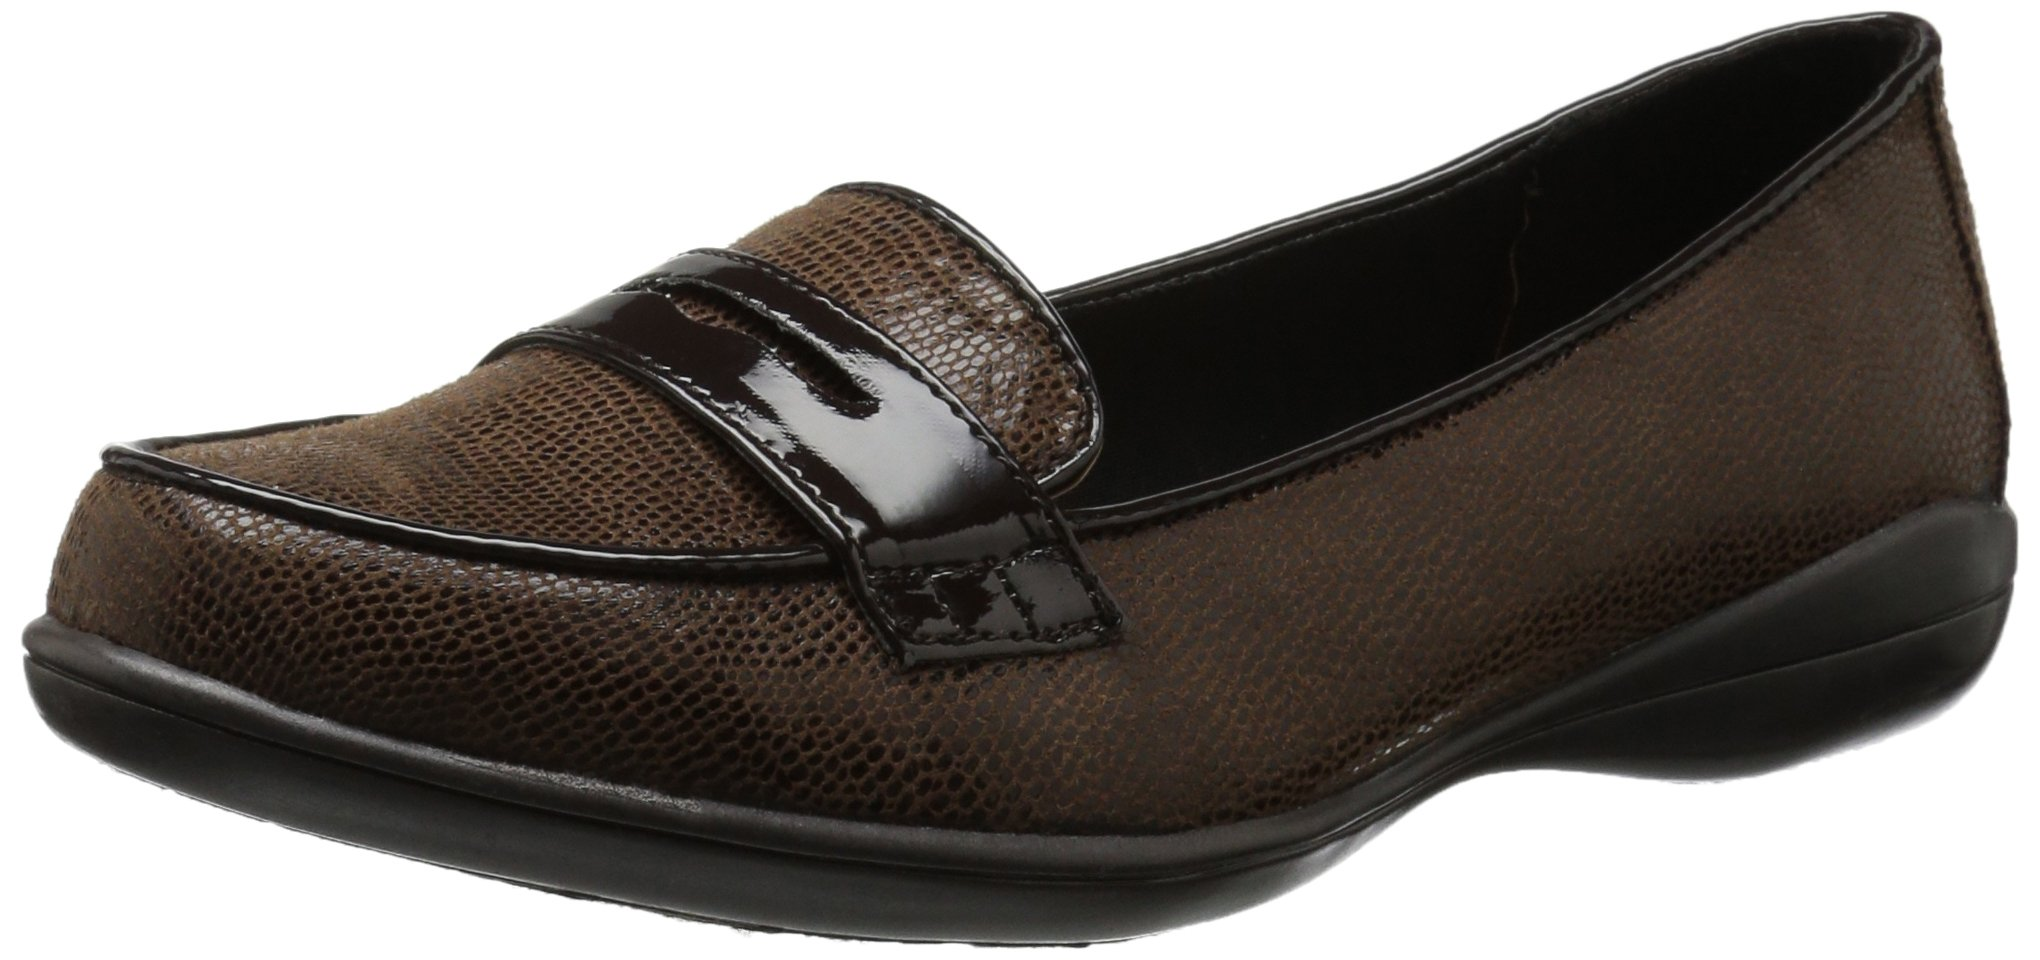 Soft Style by Hush Puppies Women's Daly Penny Loafer, Dark Brown Lizard/Patent, 8.5 W US by Soft Style (Image #1)